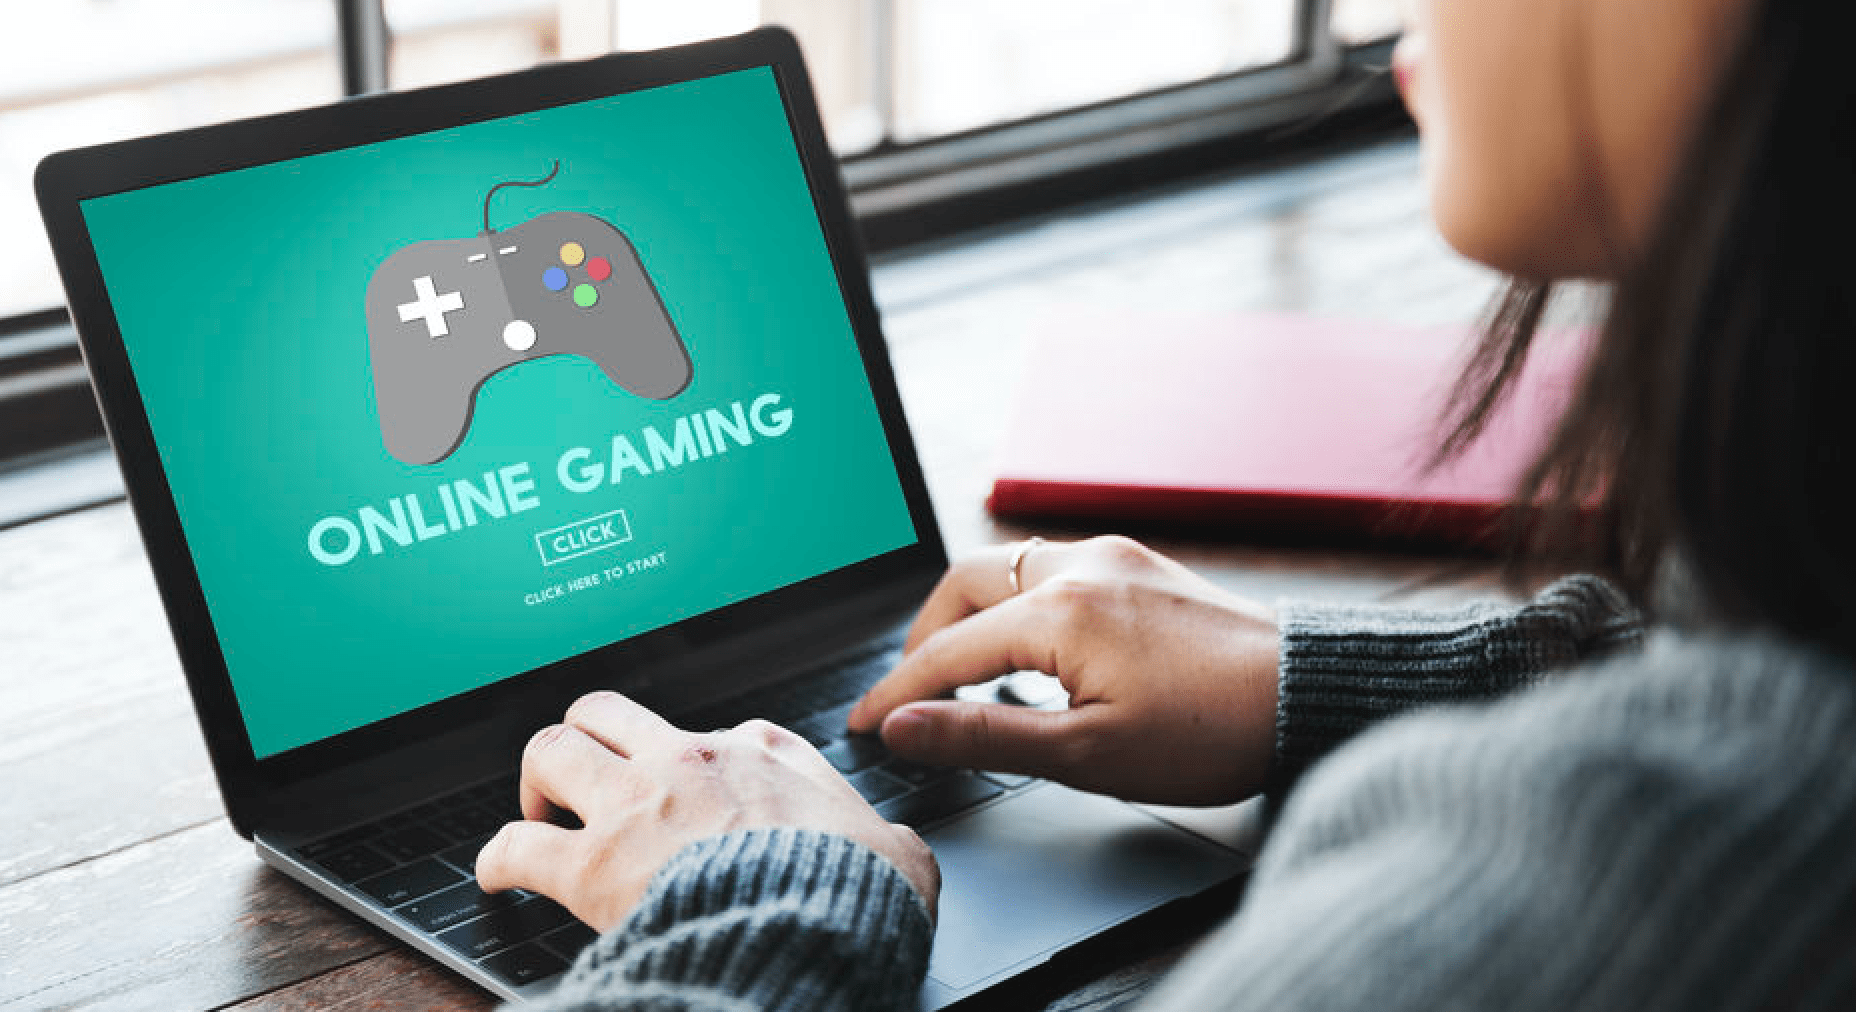 Why is Online Gaming So Popular in the United States?